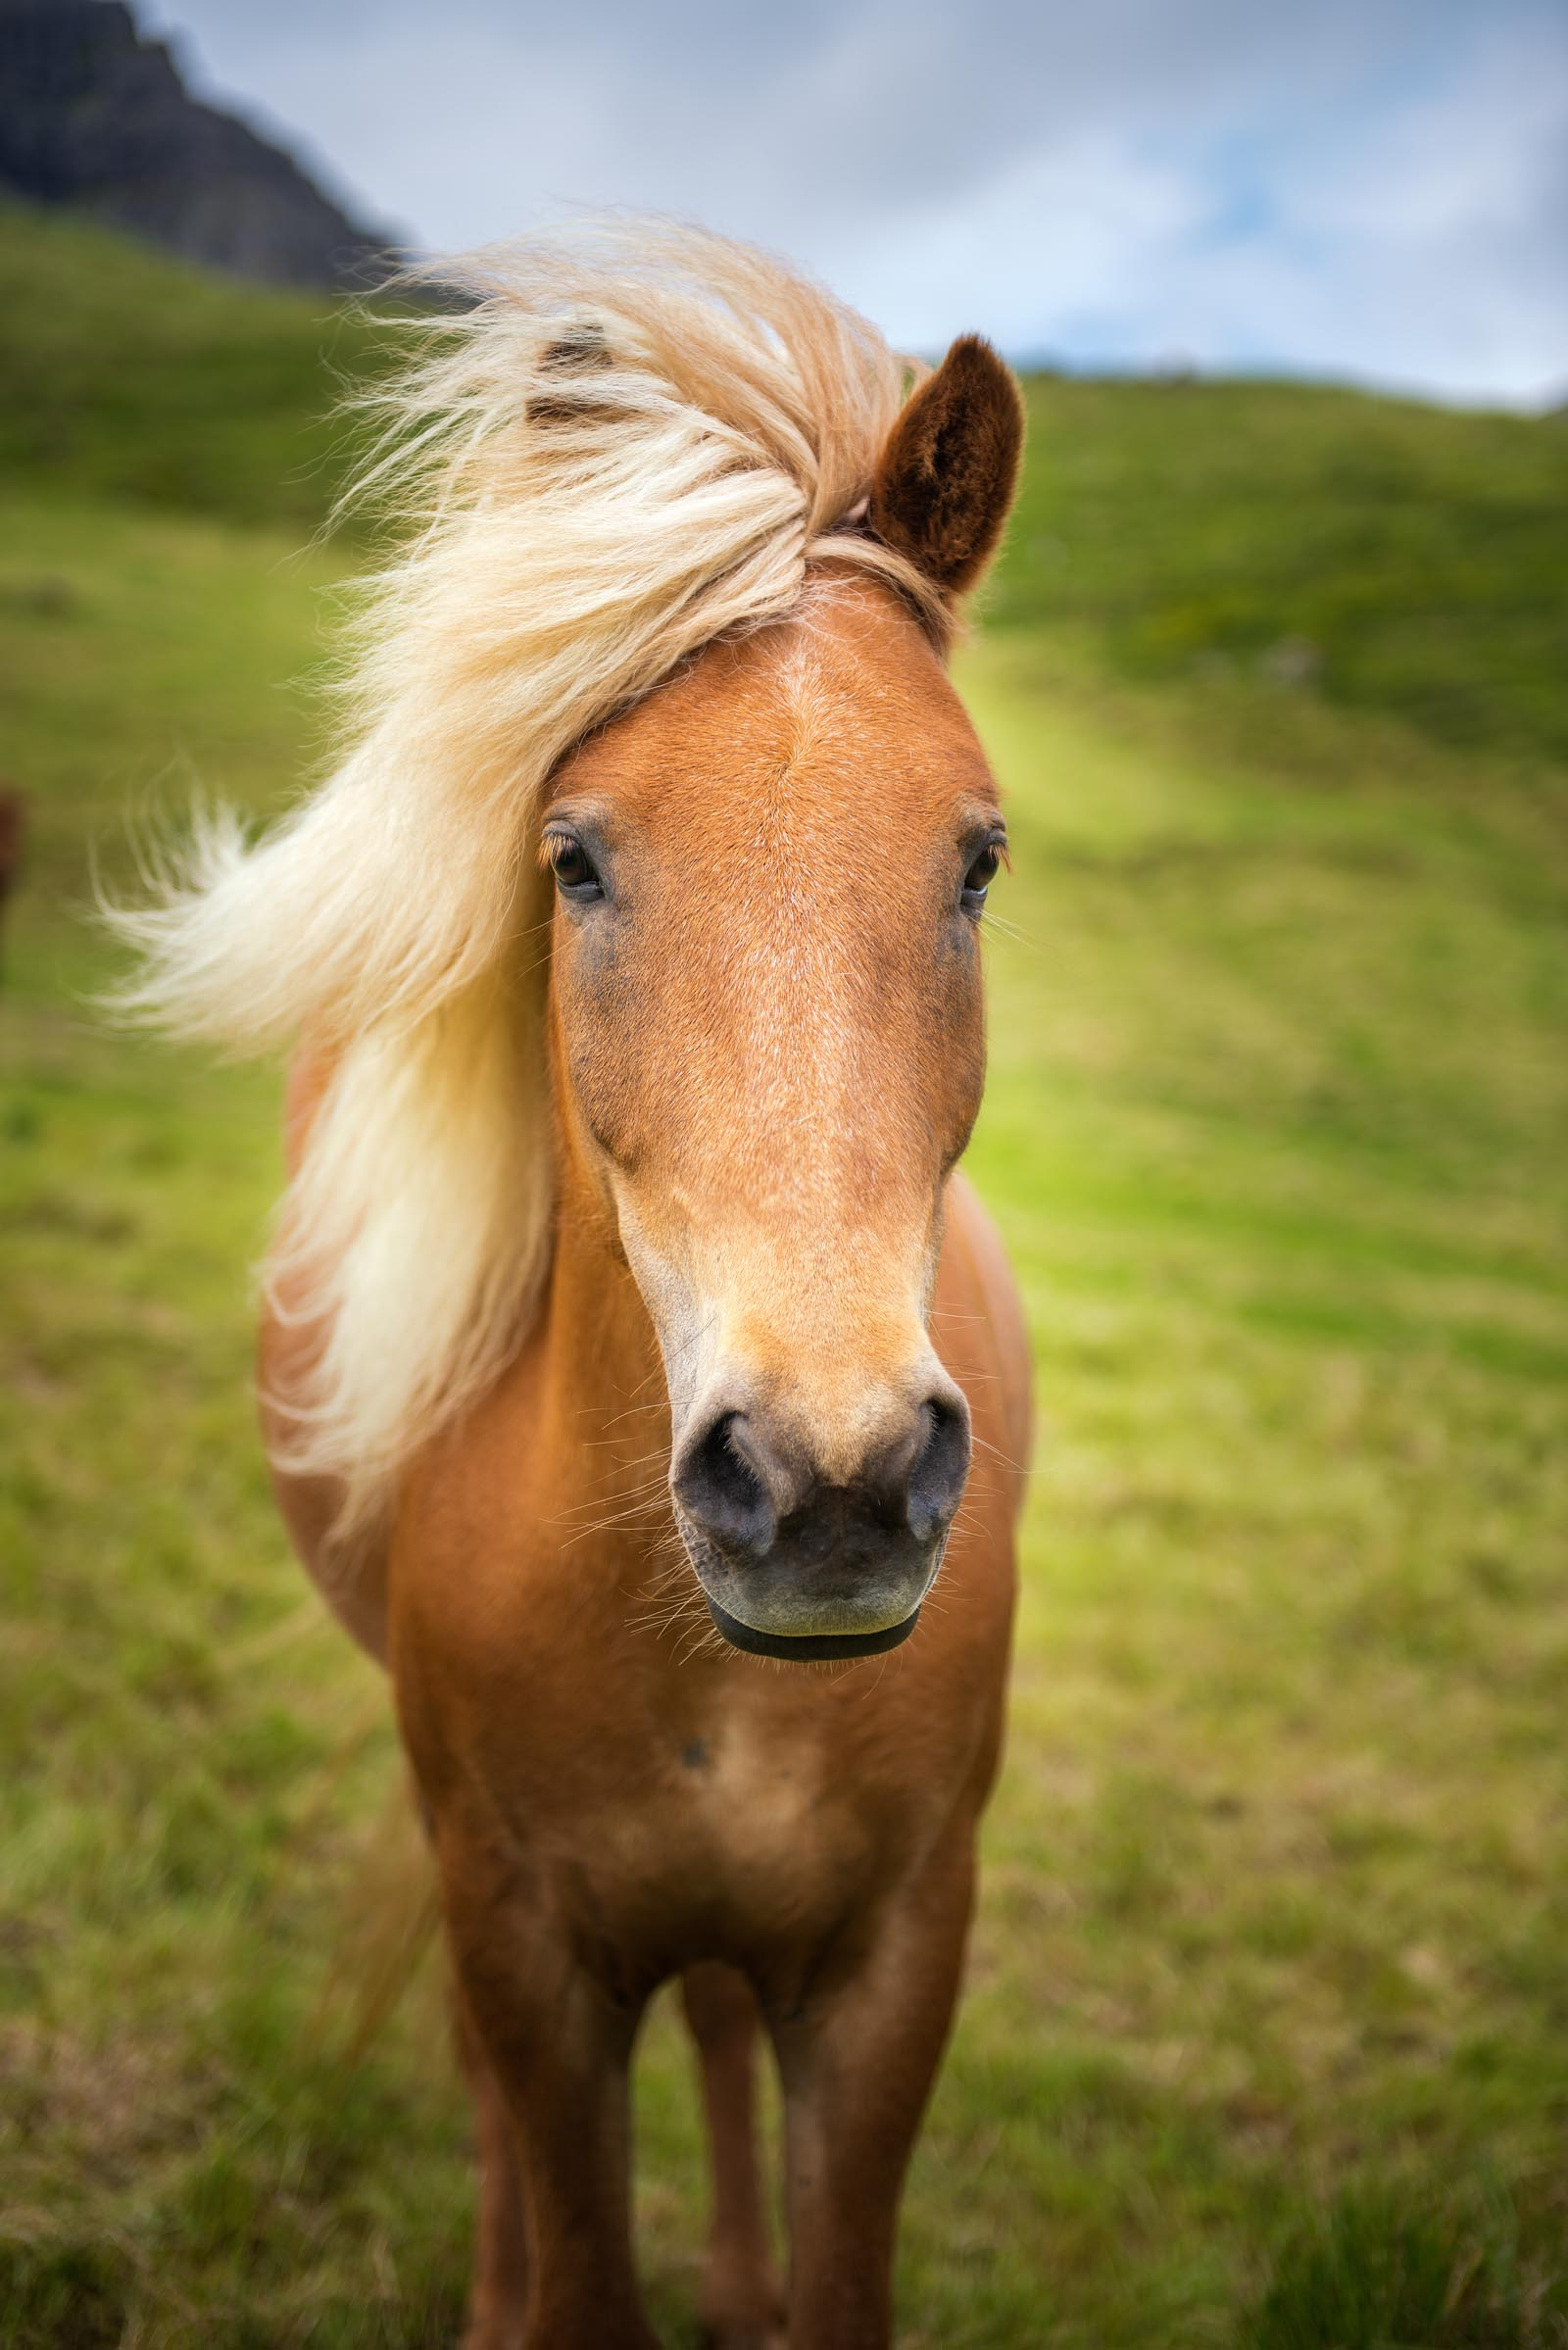 Photograph of Horse in Gasadalur, Faroe Islands by Brent Goldman Photography